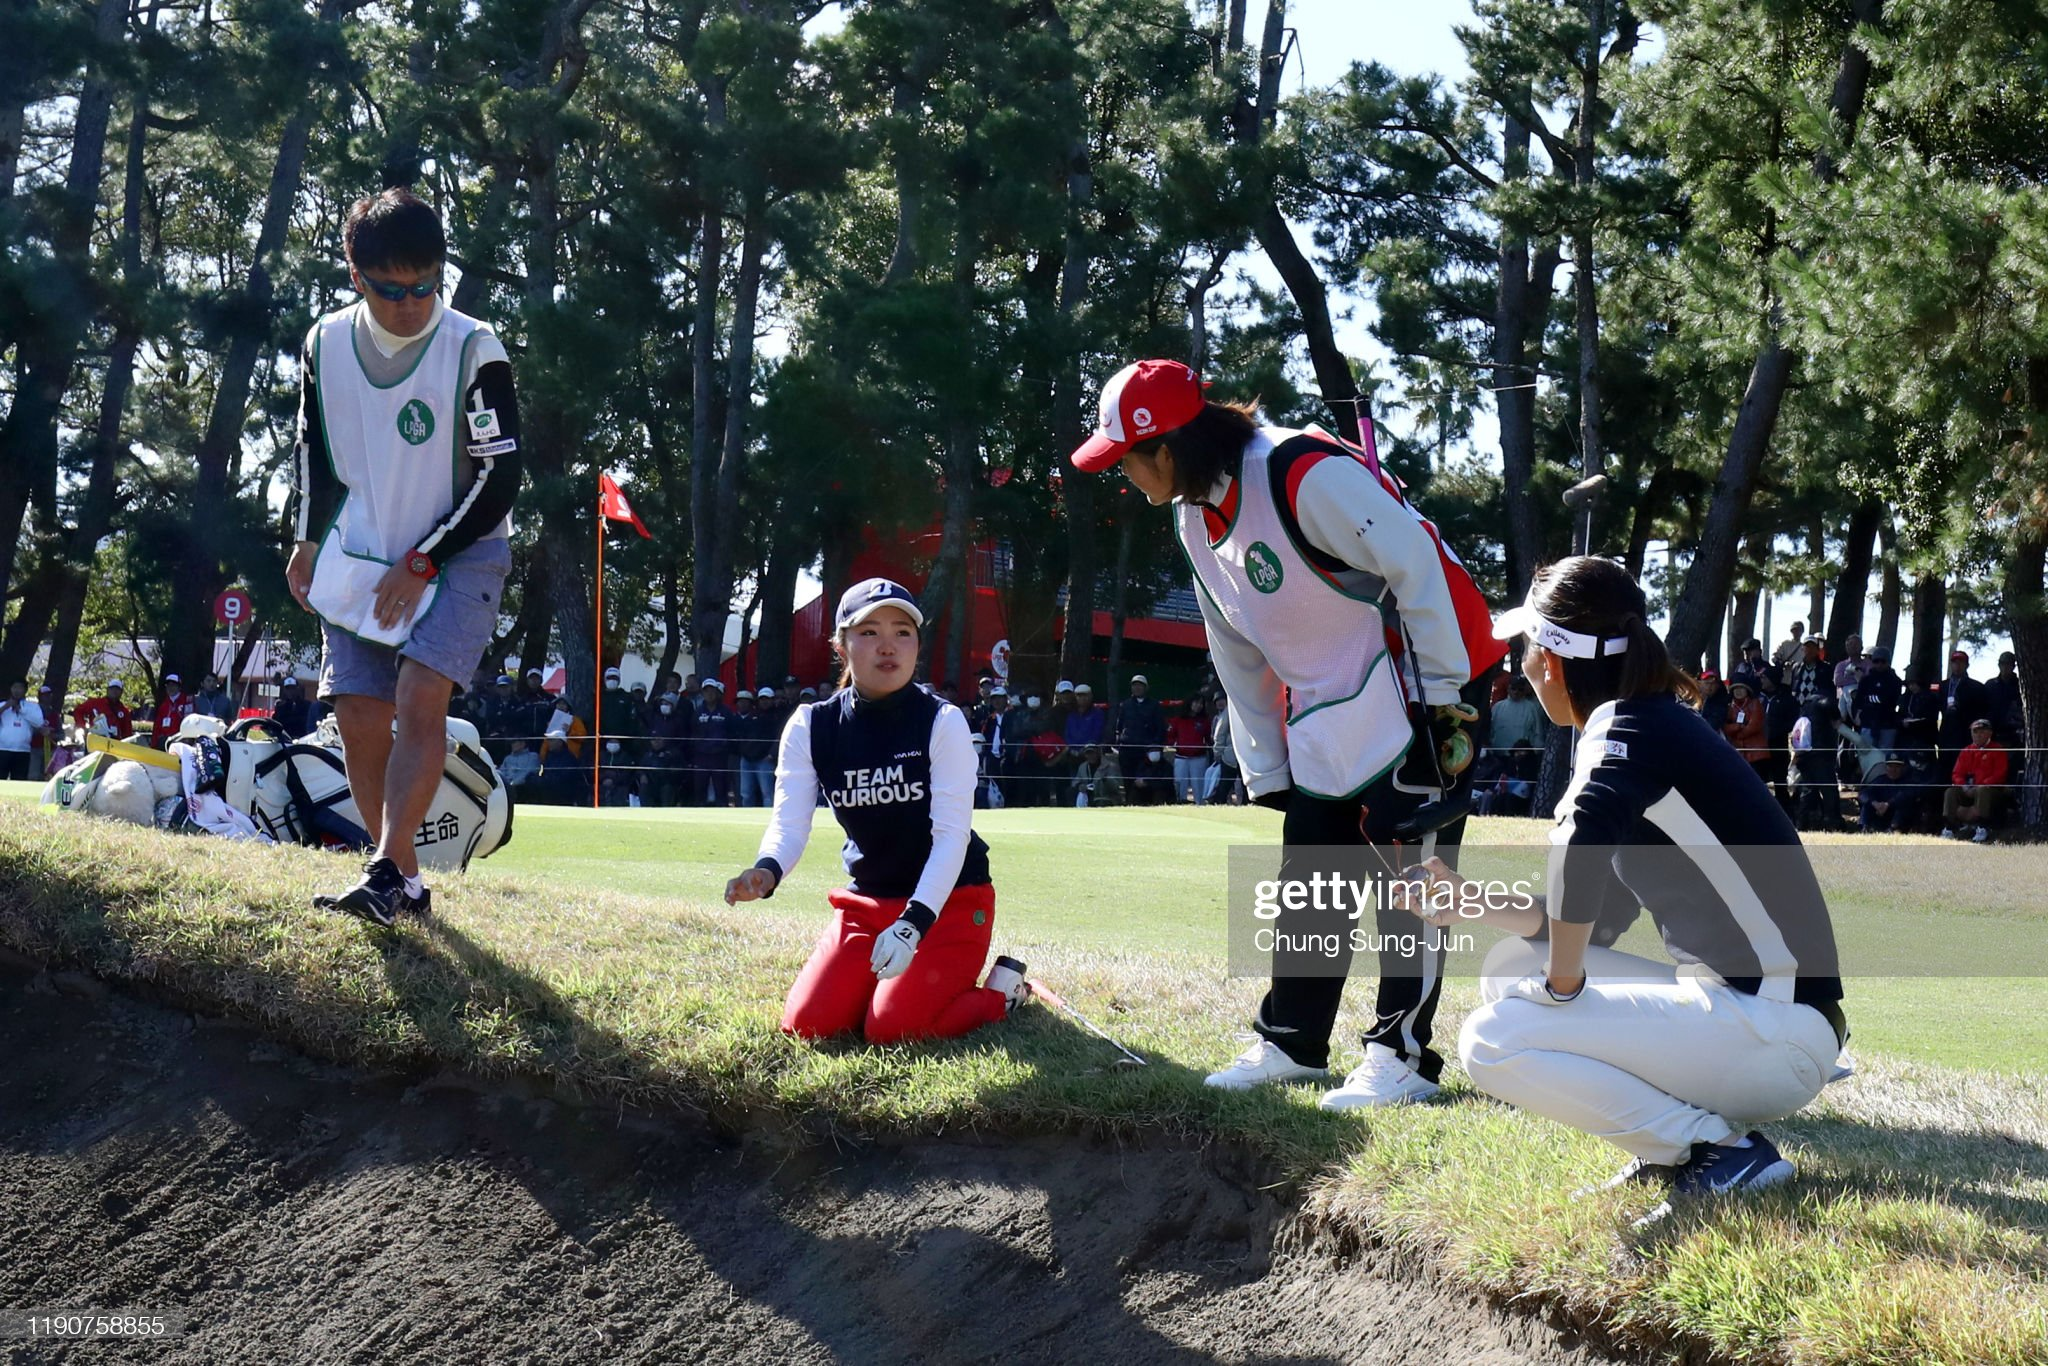 https://media.gettyimages.com/photos/ayaka-furue-of-japan-tries-to-find-her-ball-at-the-edge-of-a-green-on-picture-id1190758855?s=2048x2048